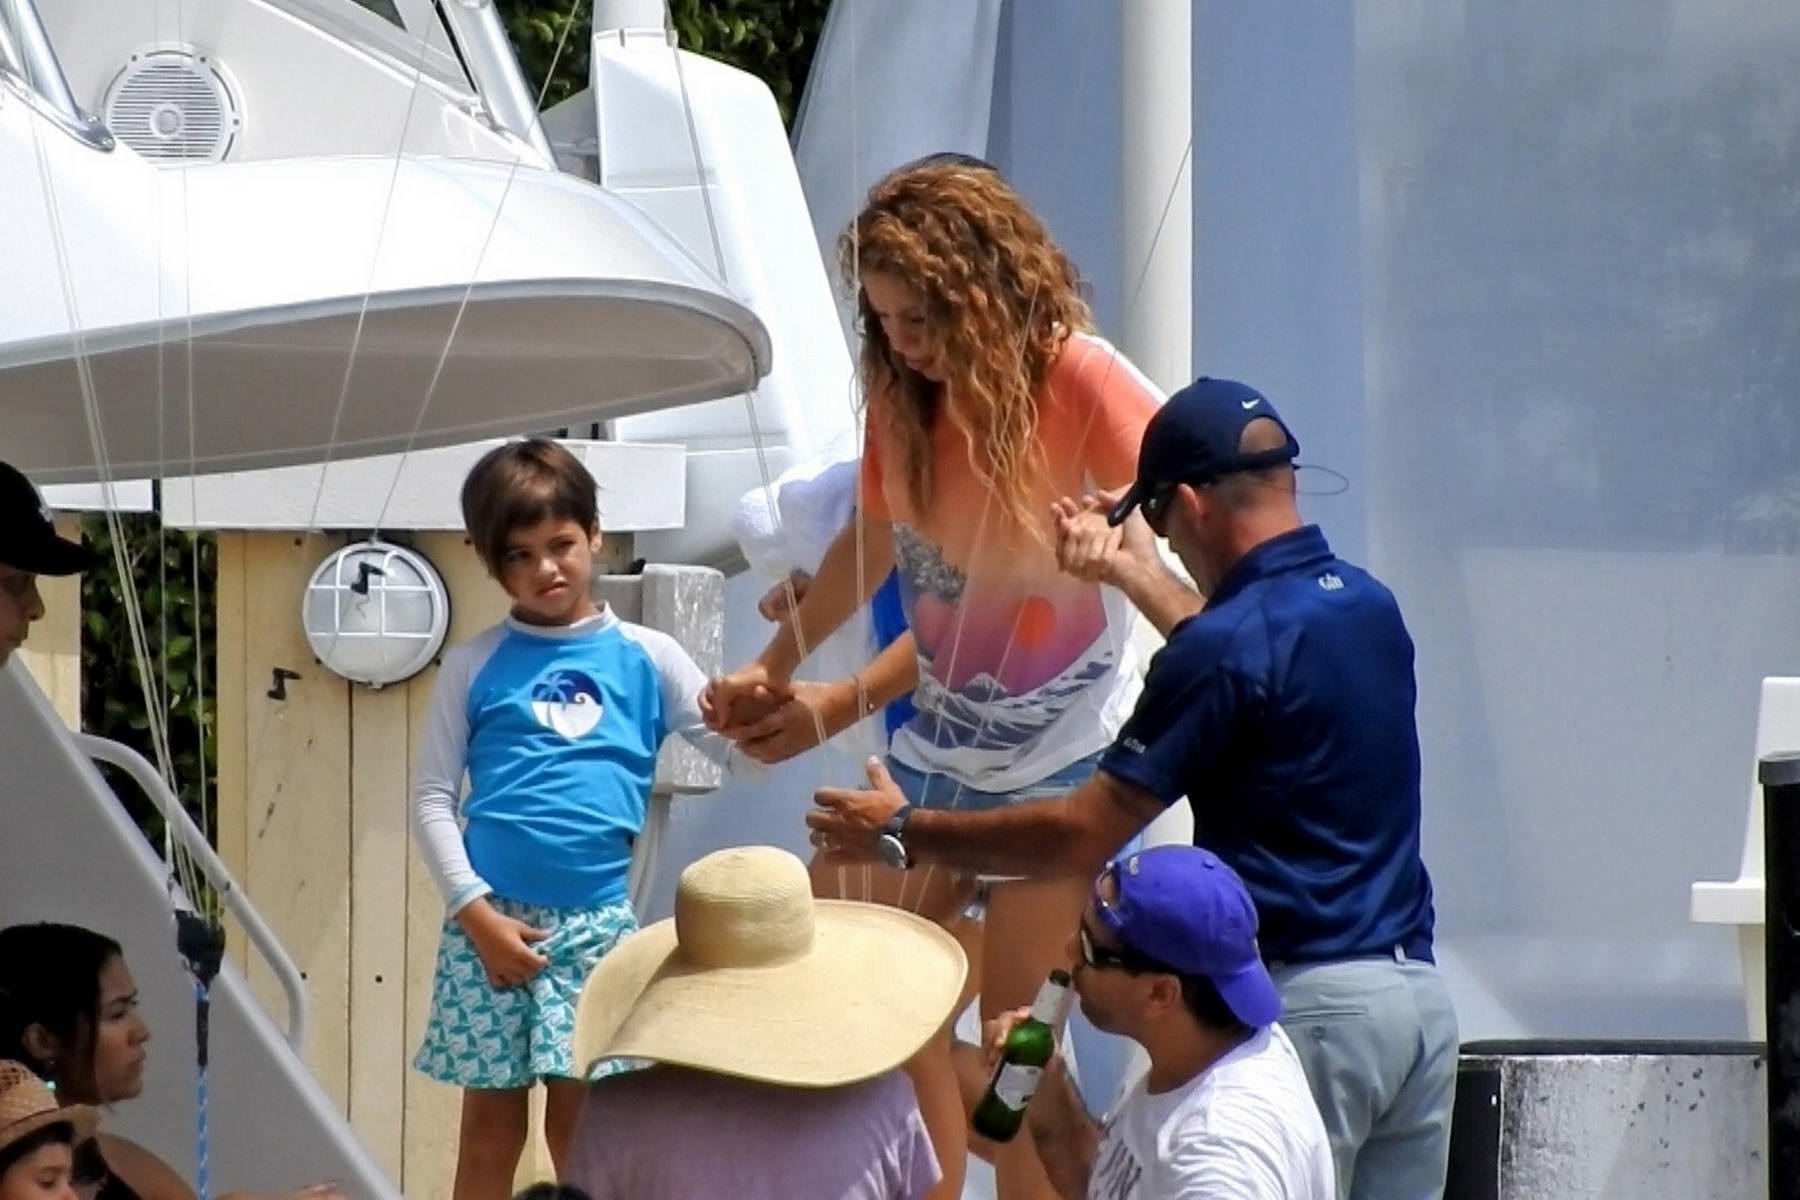 shakira wearing clown makeup for a private boat party with her kids in miami beach, florida-200818_6